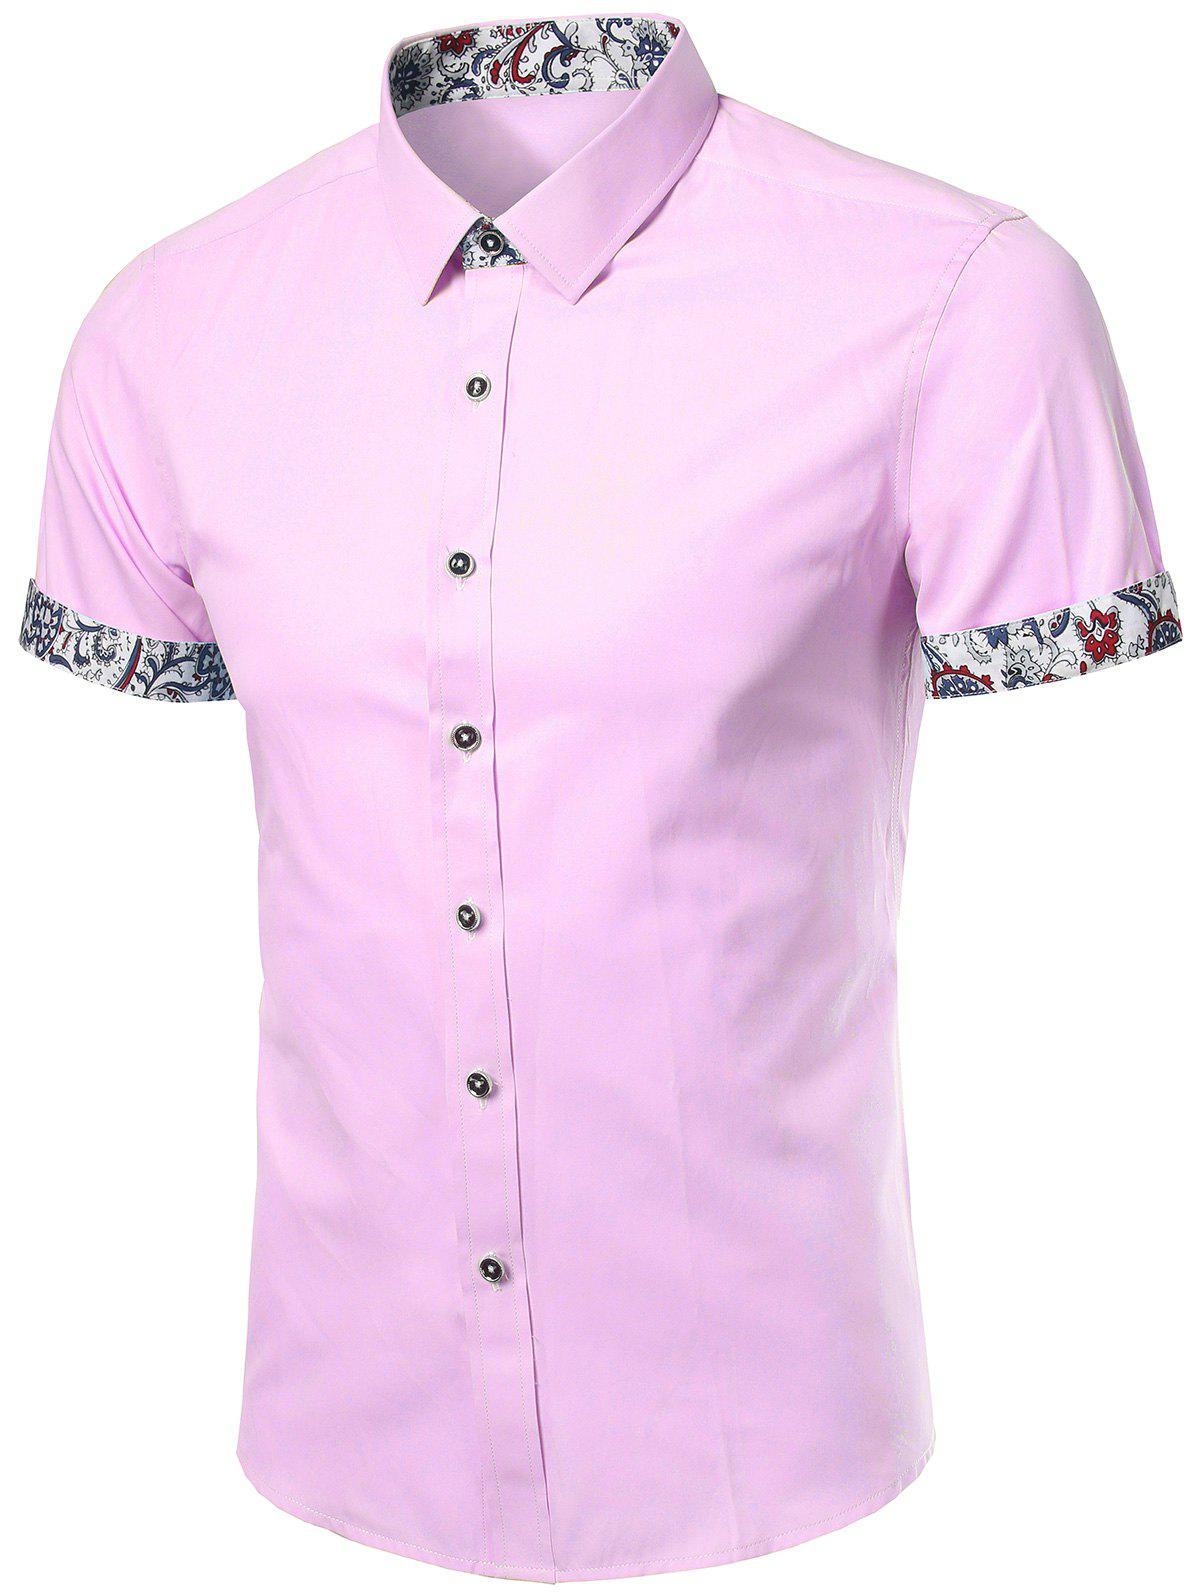 Floral Trim Short Sleeves Shirt - PINK XL